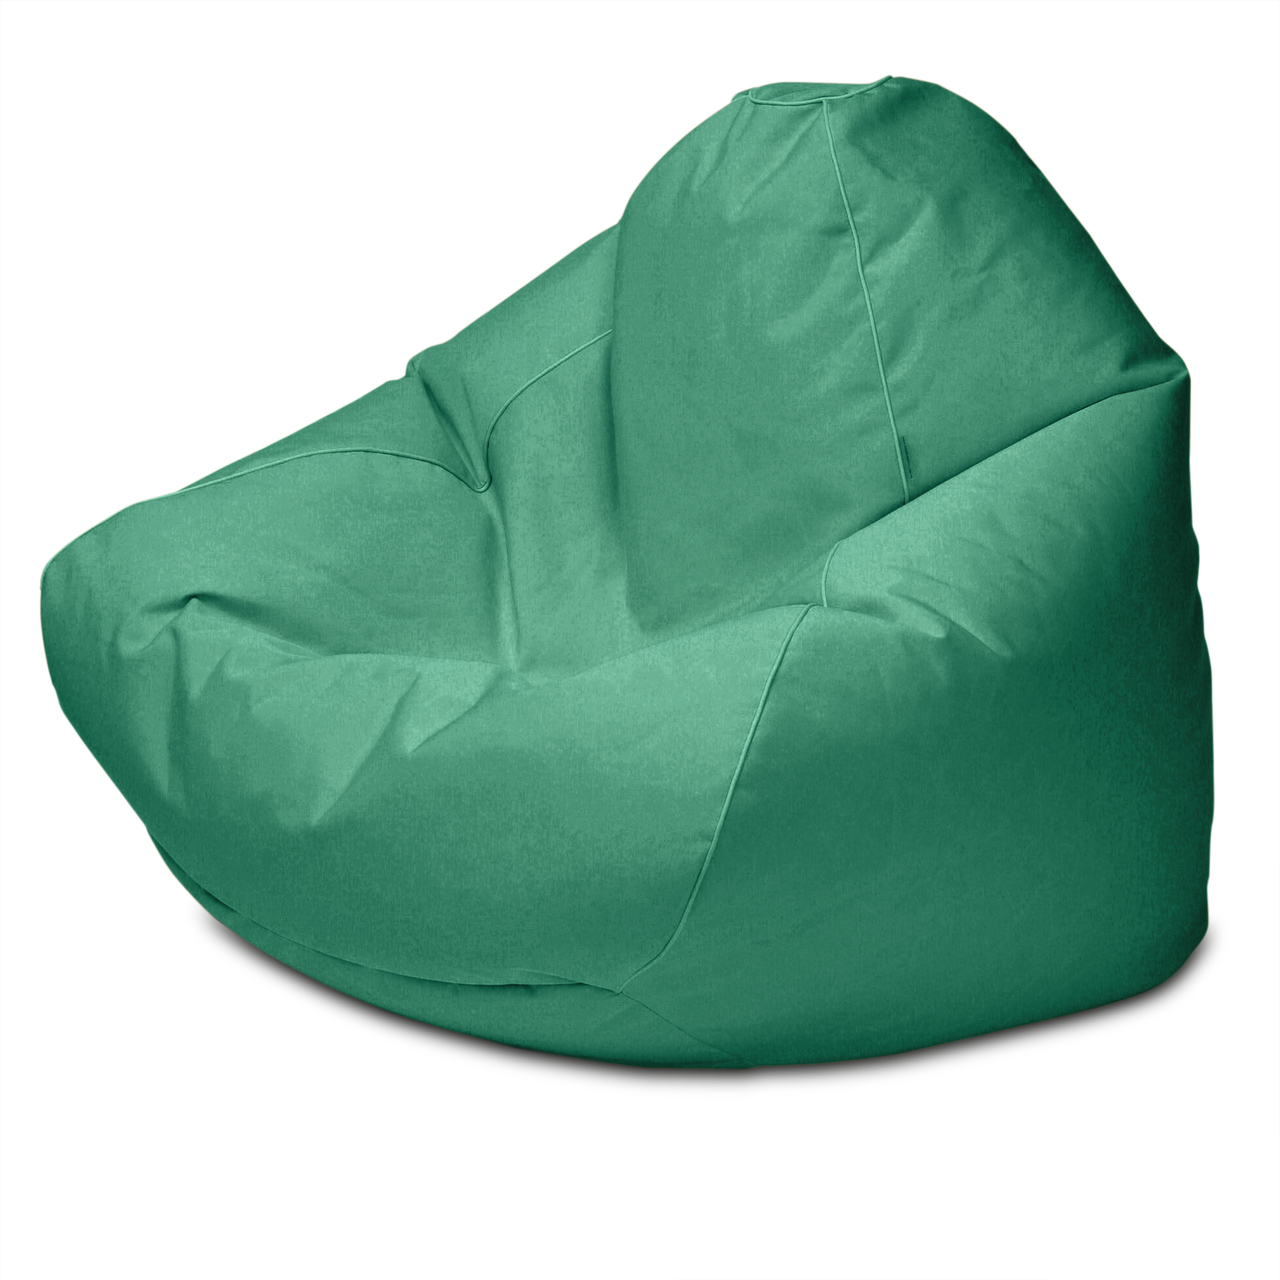 Sunbrella Outdoor Queen Size Bean Bag in seagrass